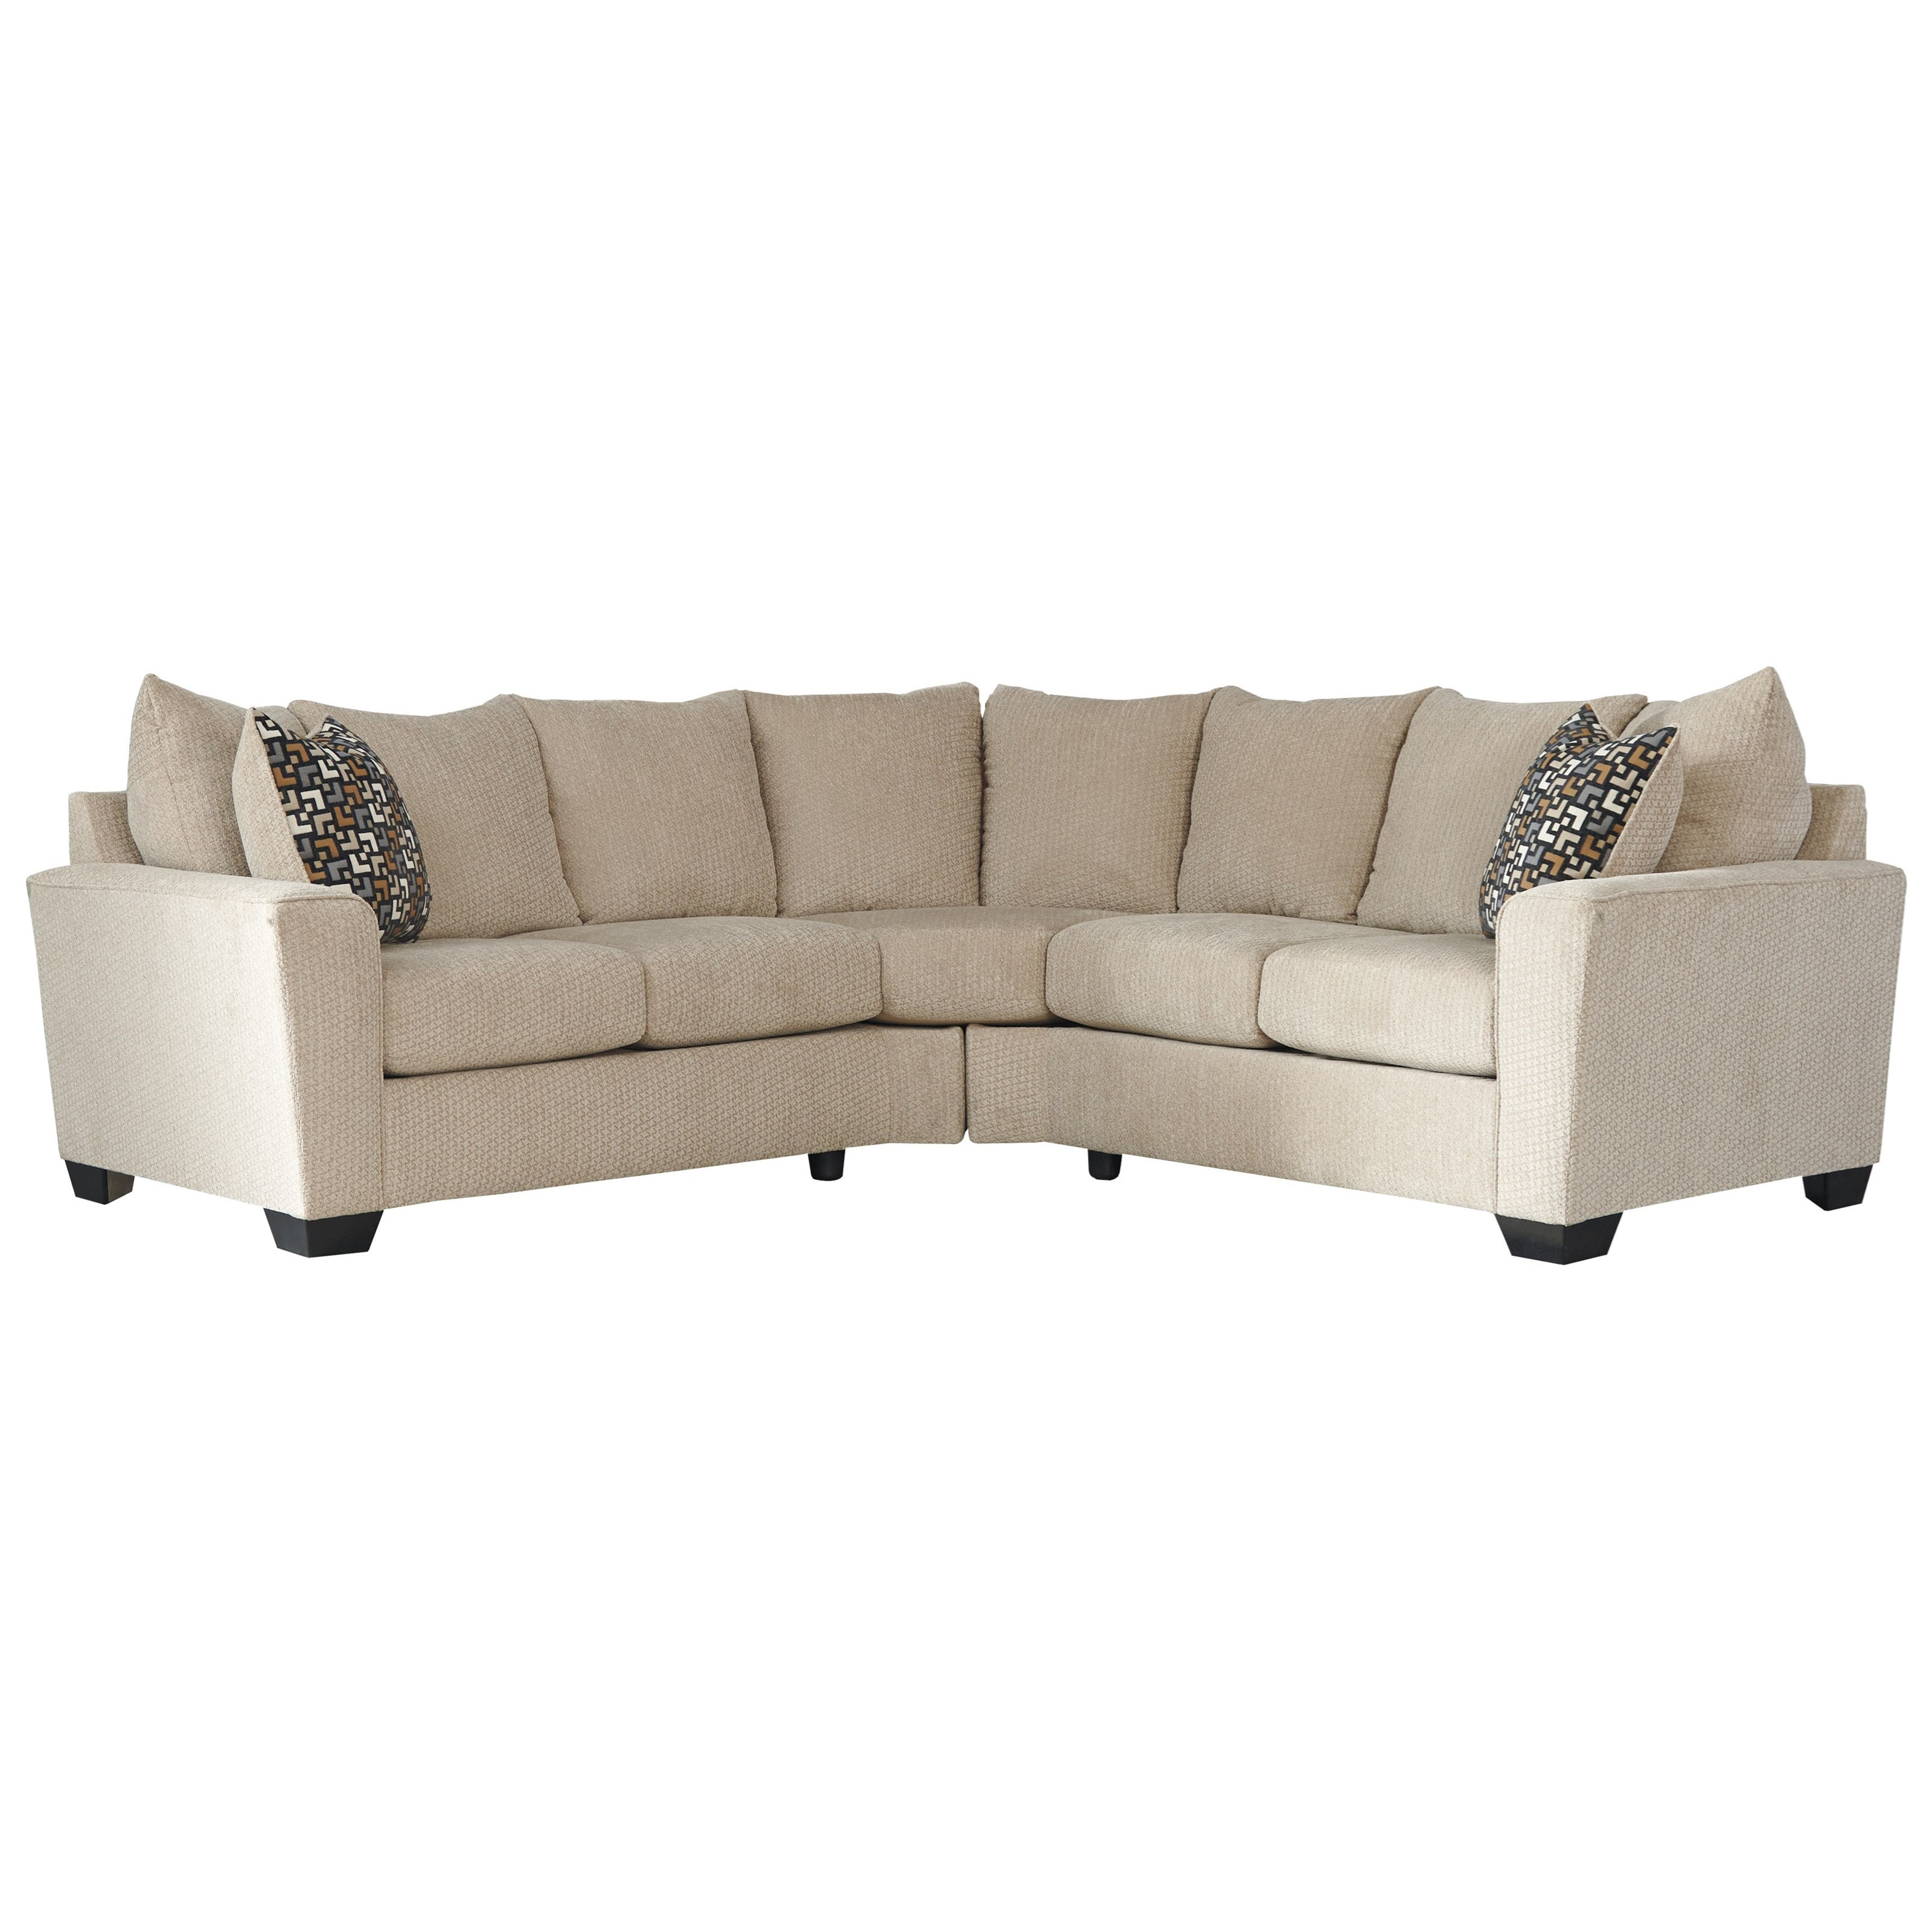 Benchcraft Wixon 2 Piece Corner Sectional With Rounded